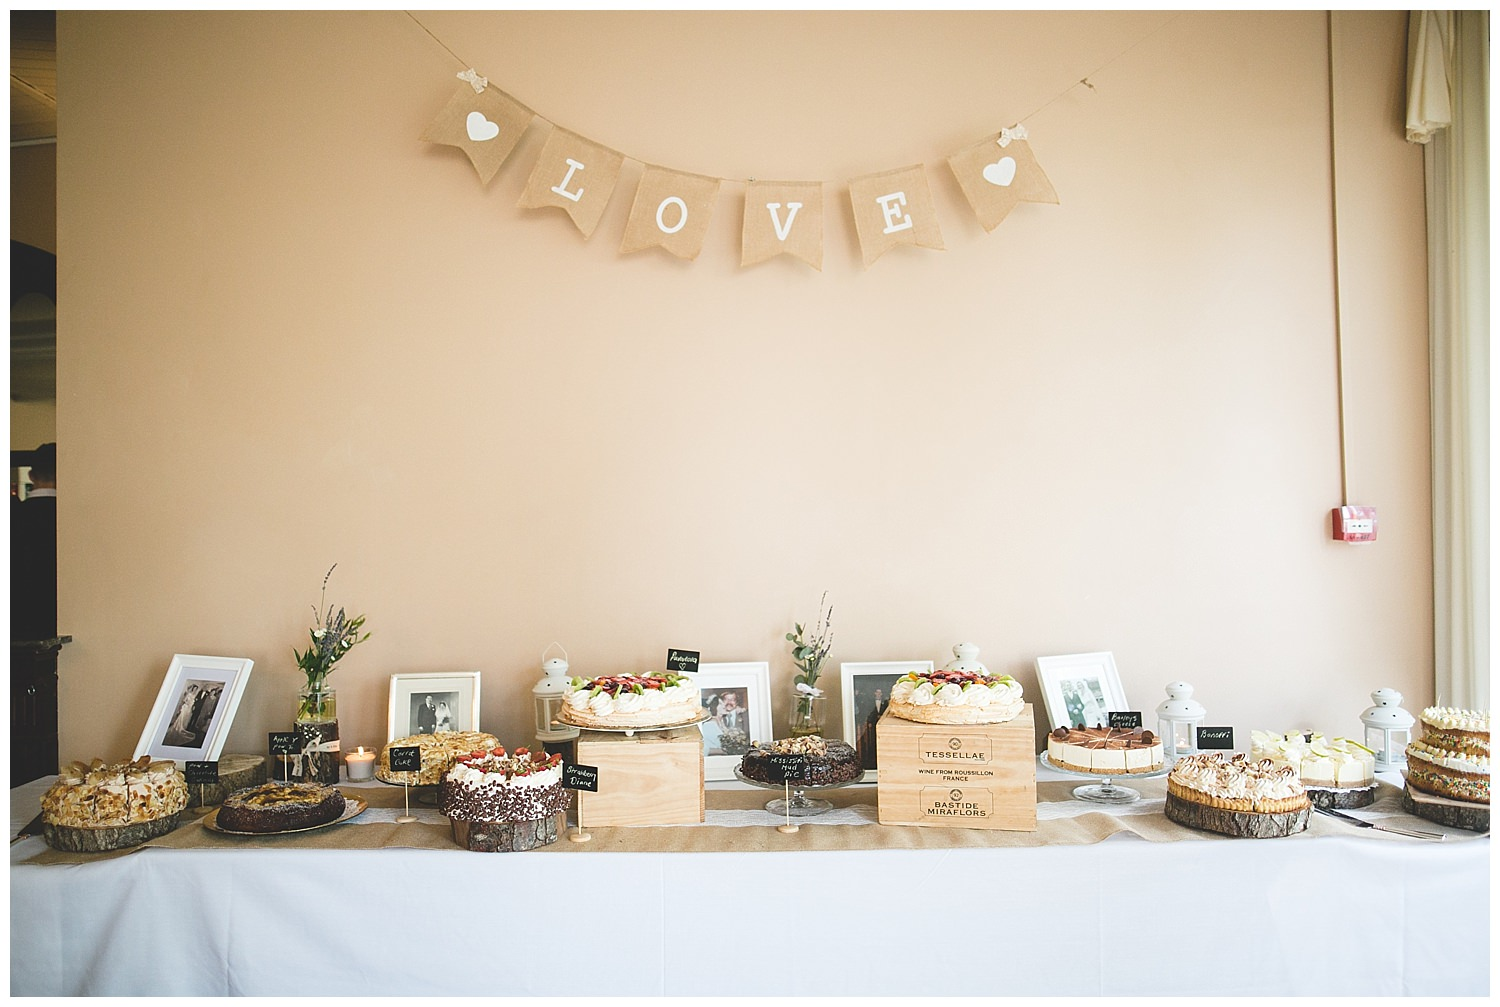 beautiful cake table with a selection of different bakes, cakes and treats